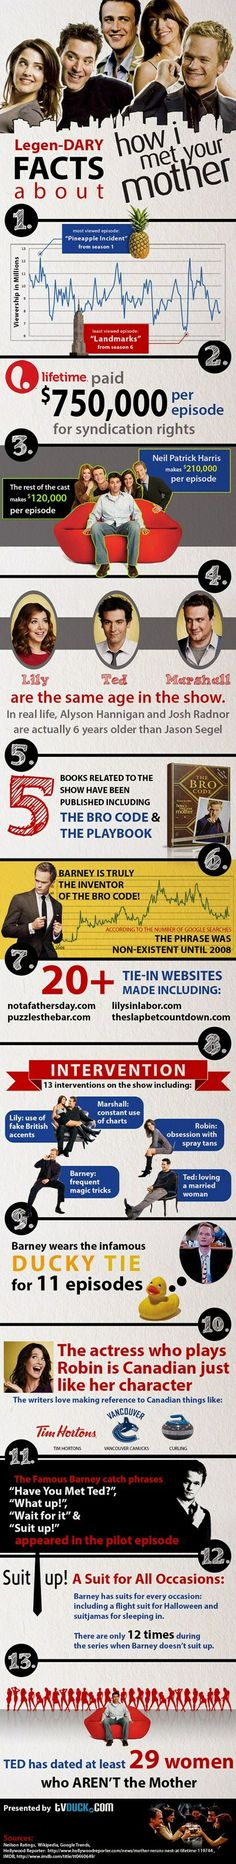 Legen-DARY facts about How I Met Your Mother - How I Met Your Mother has been making us laugh since TVDuck has put together an infographic highlighting some of the amazing stats behind one of our favorite shows. My most FAVORITE show ever! How I Met Your Mother, Thats 70 Show, Movies And Series, Comedy, Himym, Serge Gainsbourg, Book Tv, I Meet You, Pulp Fiction